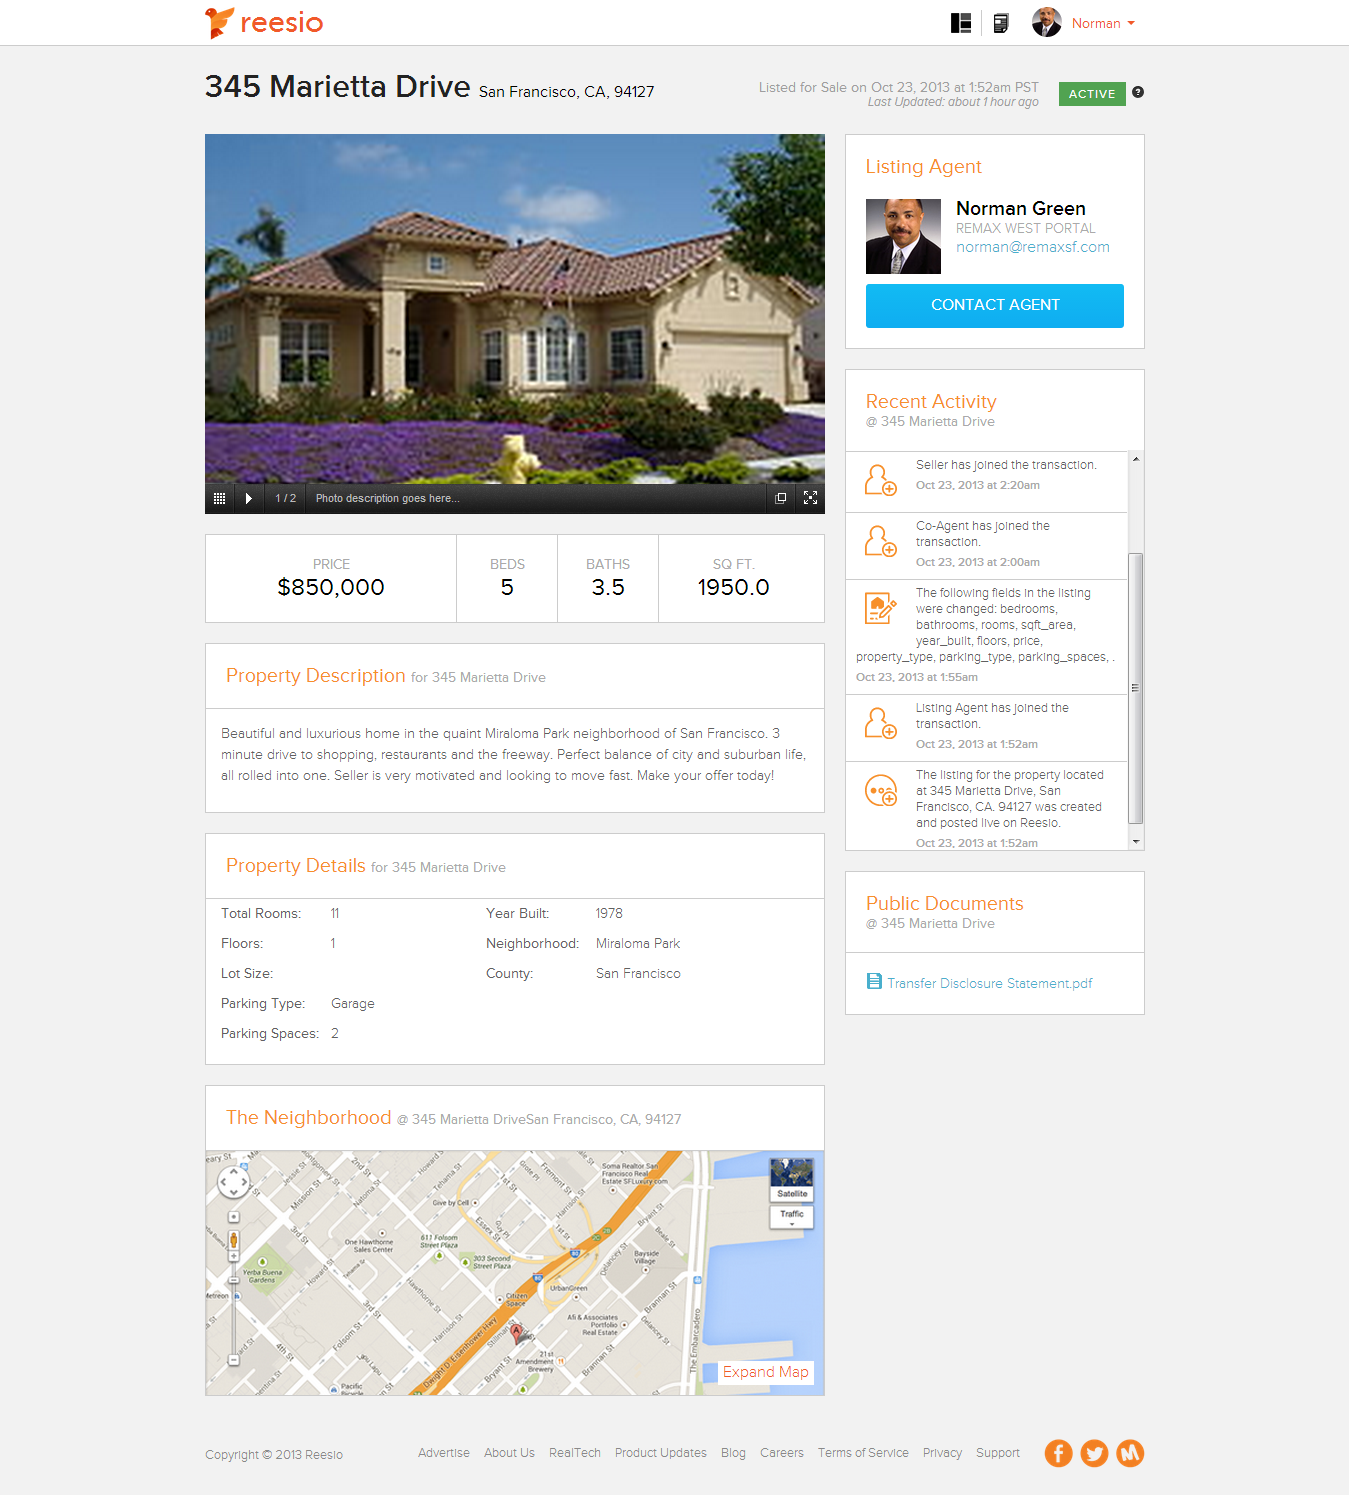 Sample screen shot of Reesio public listing page